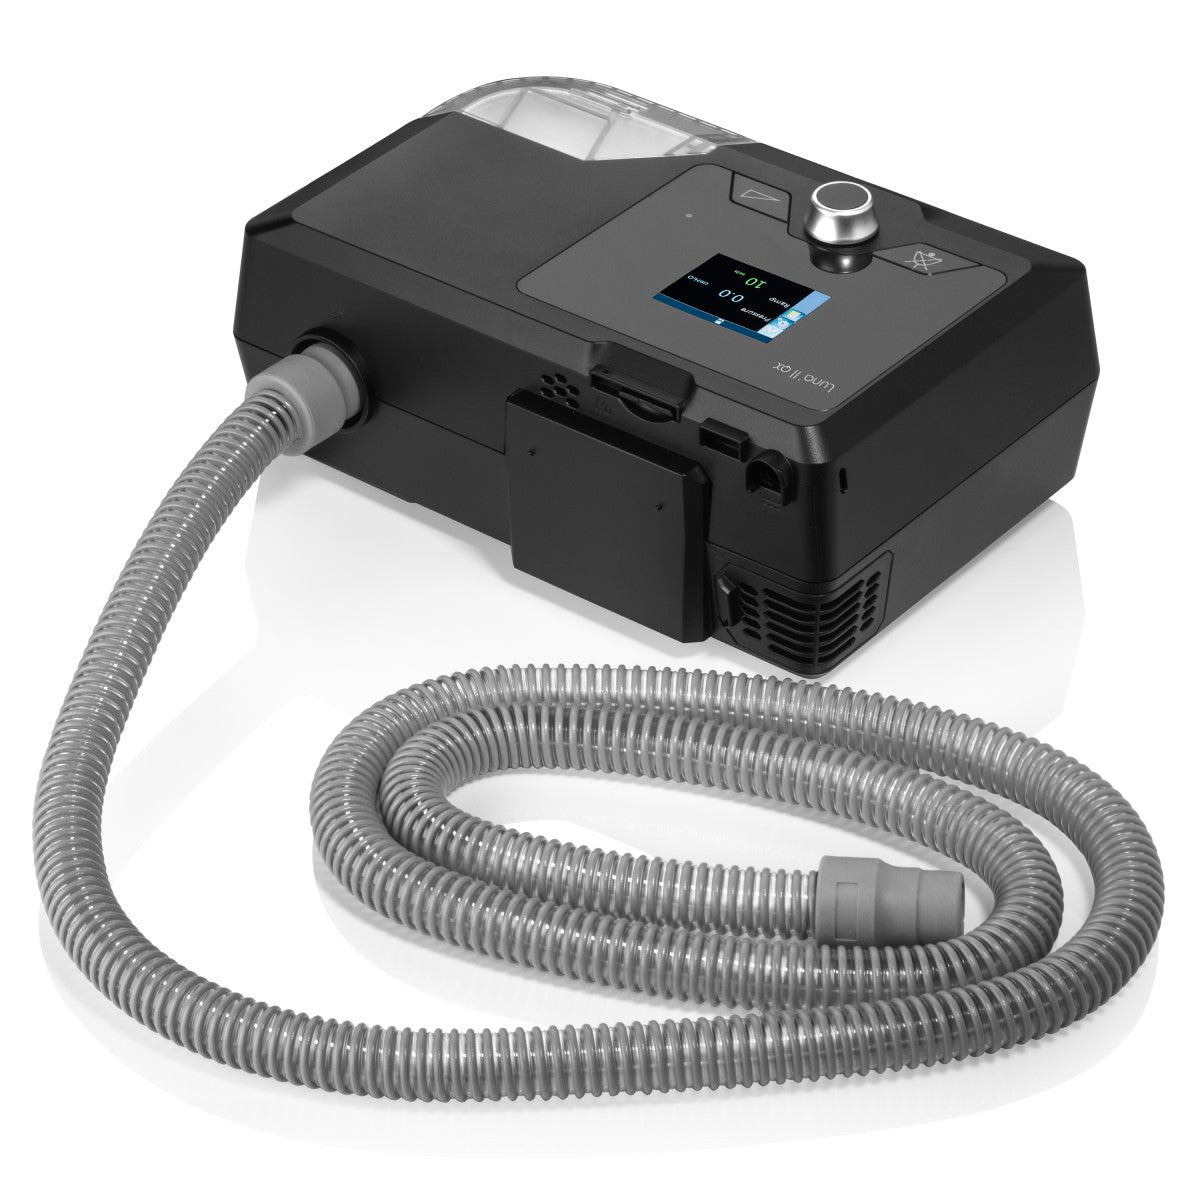 Back view of Luna II QX Auto CPAP With Integrated Heated Humidifier and swivel tube connector.